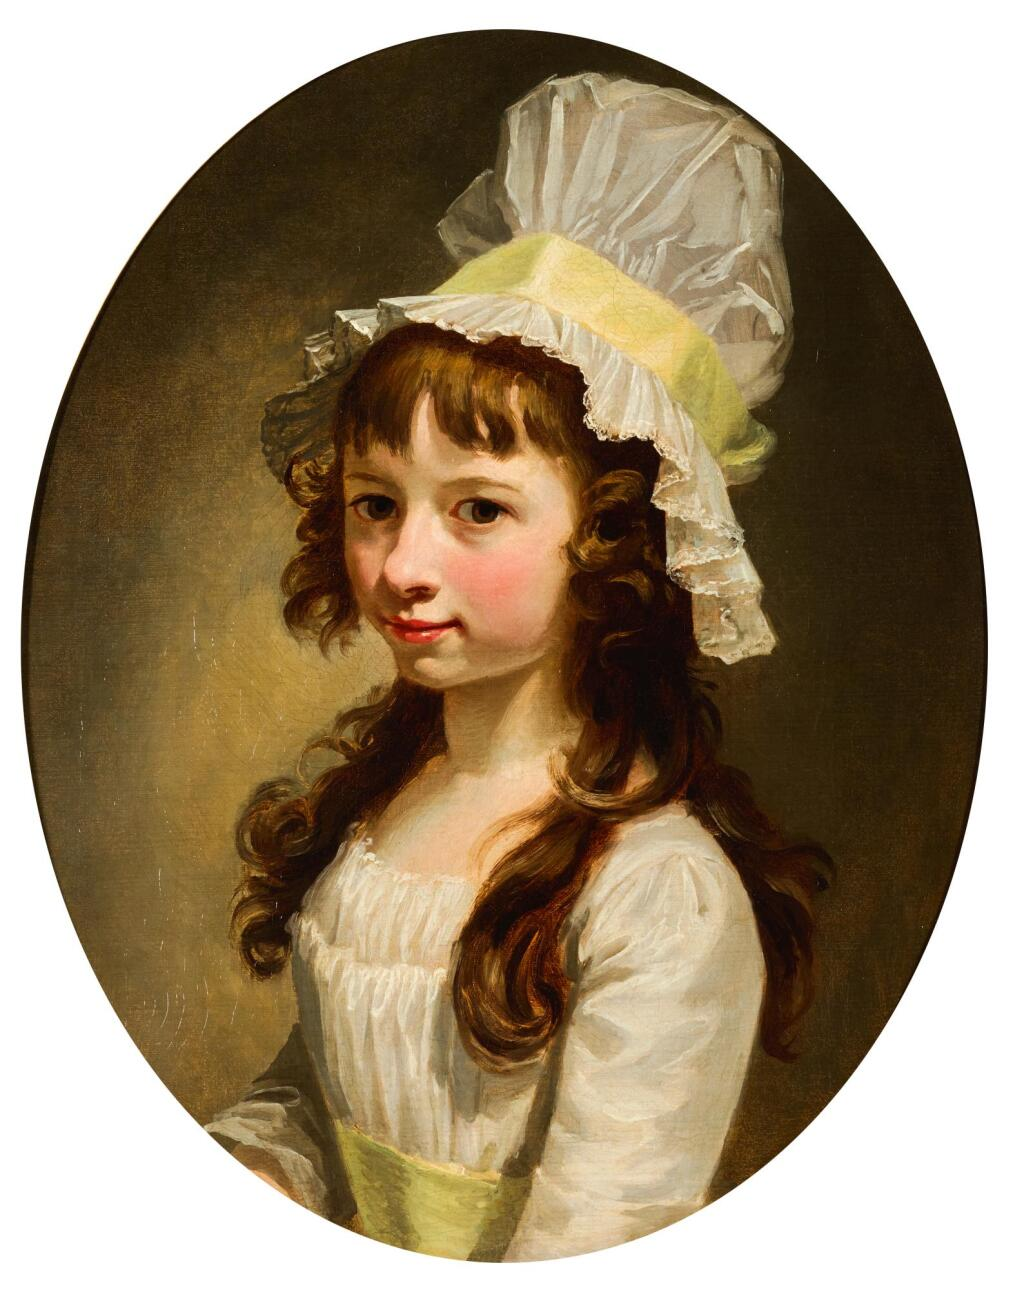 FRENCH SCHOOL, CIRCA 1800 | A portrait of a young girl, bust length, in a white dress and bonnet